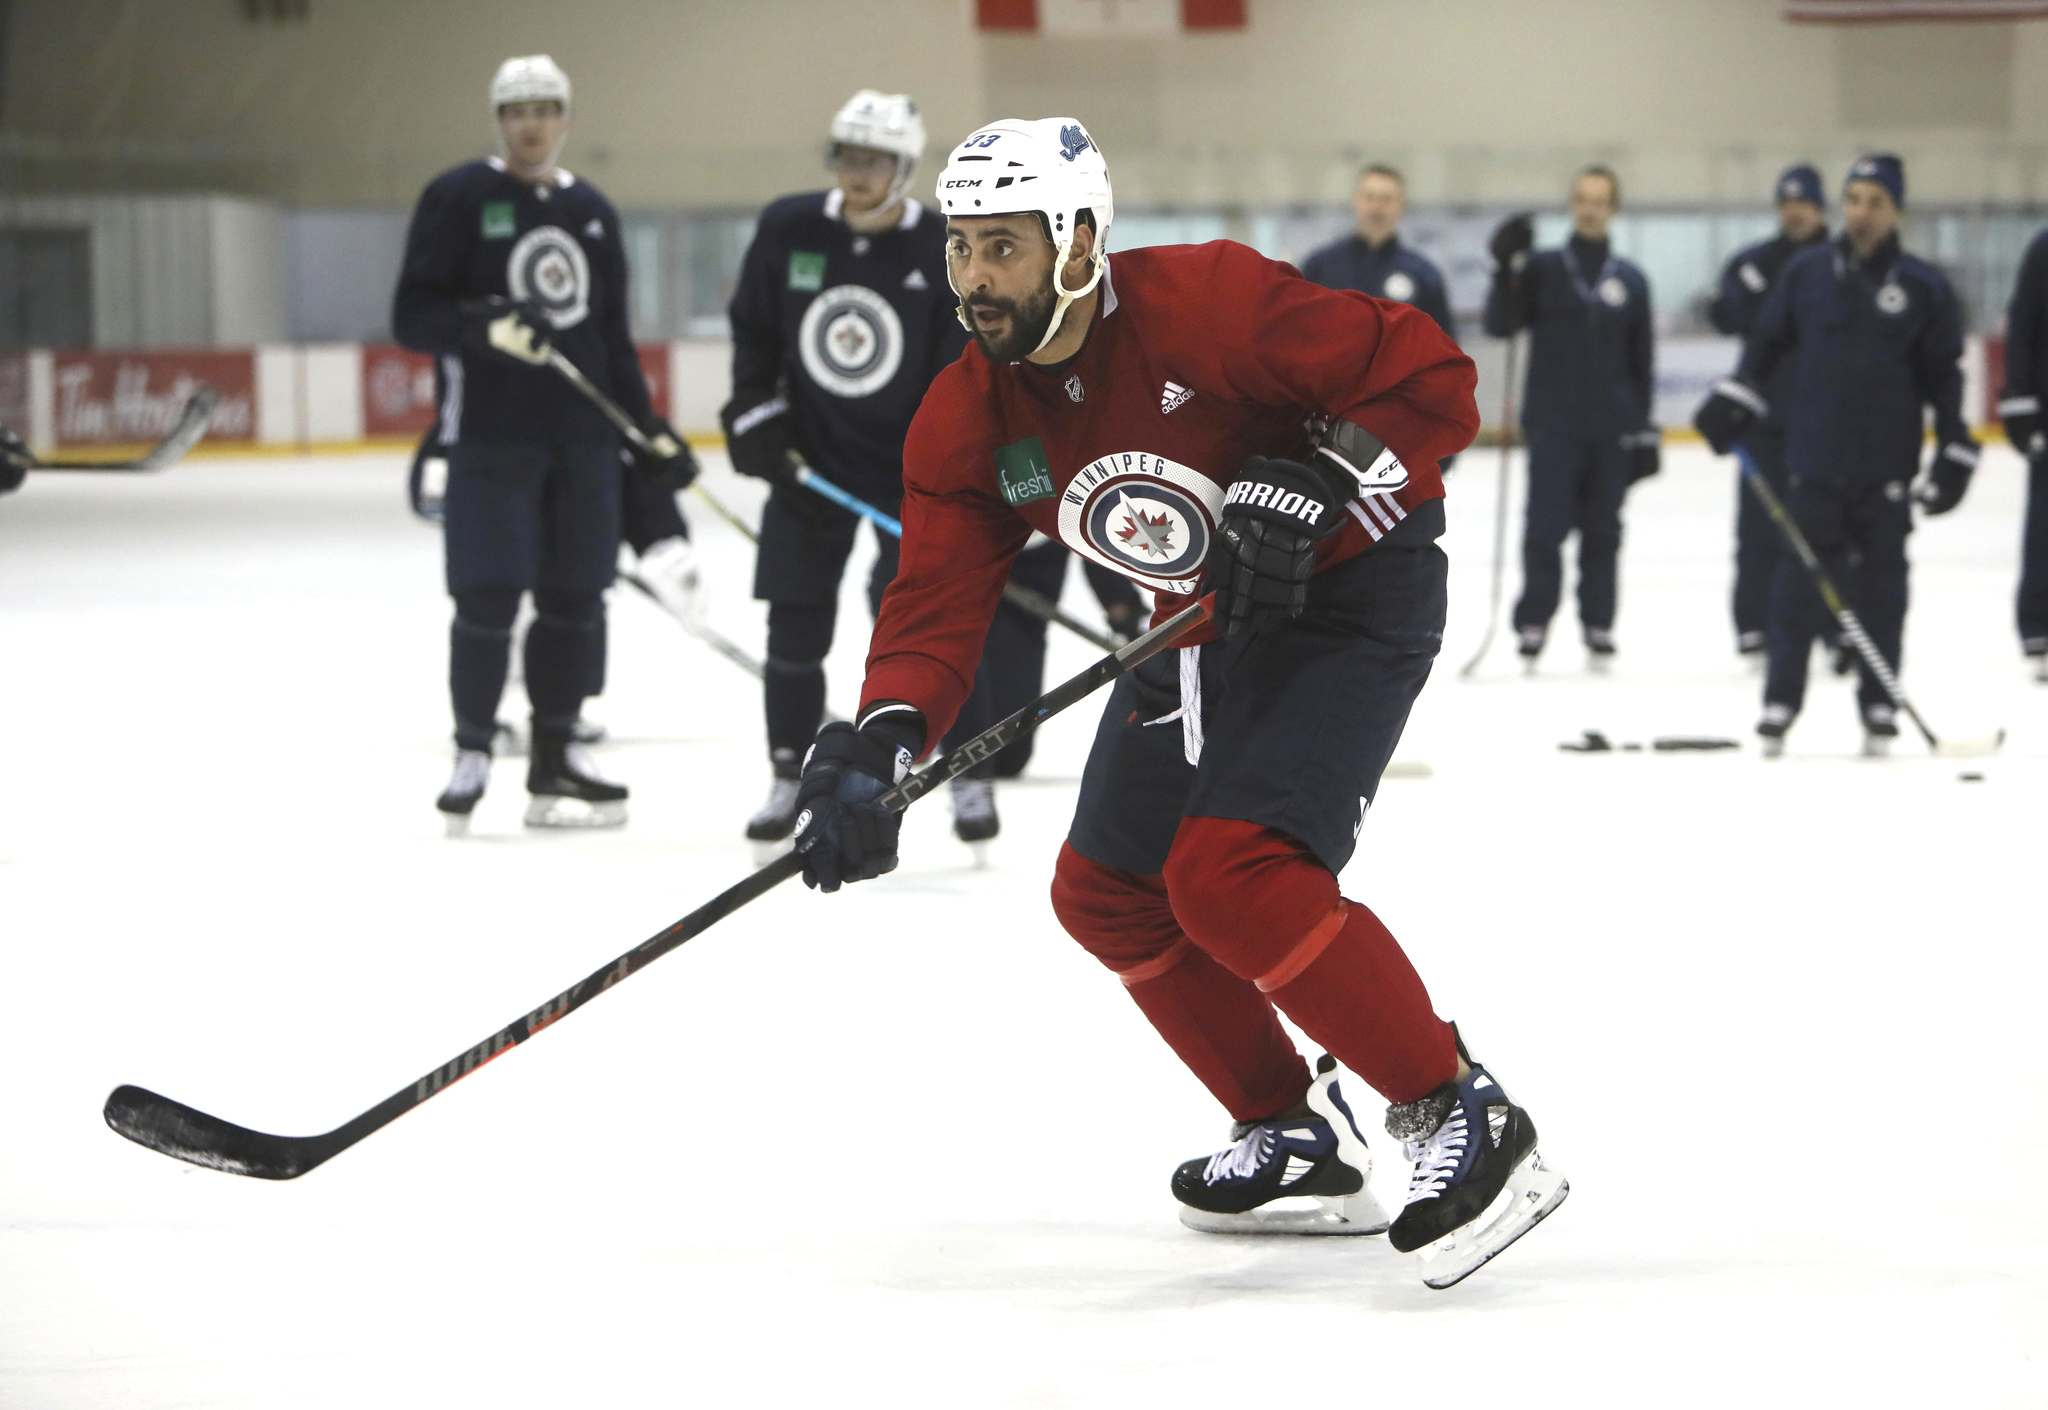 Dustin Byfuglien travelled with the team on their recent eastern swing, and was even expected to play, but left early and hasn't skated since. (Ruth Bonneville / Winnipeg Free Press files)